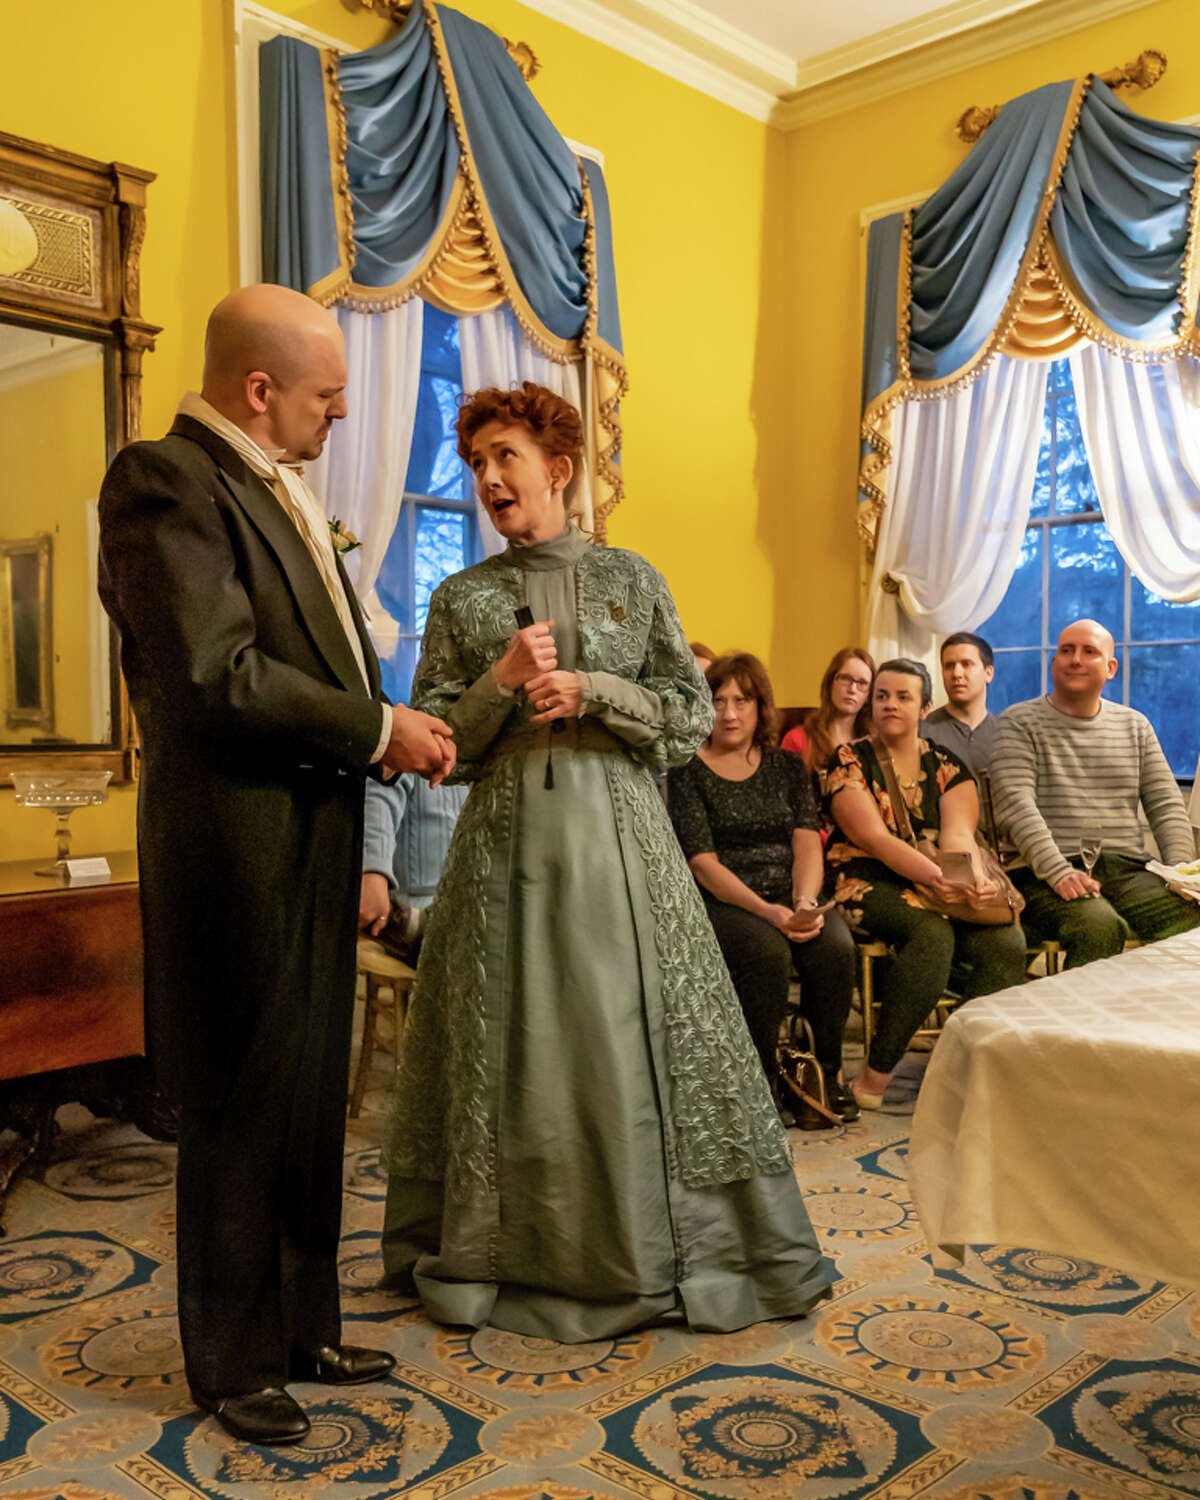 """Tony Pallone, left, and Janet Hurley Kimlicko are antagonists in the NorthEast Theatre Ensemble production of Oscar Wilde's """"An Ideal Husband,"""" running through April 28, 2019, at Ten Broeck Mansion in Albany.Audience members are in the background."""